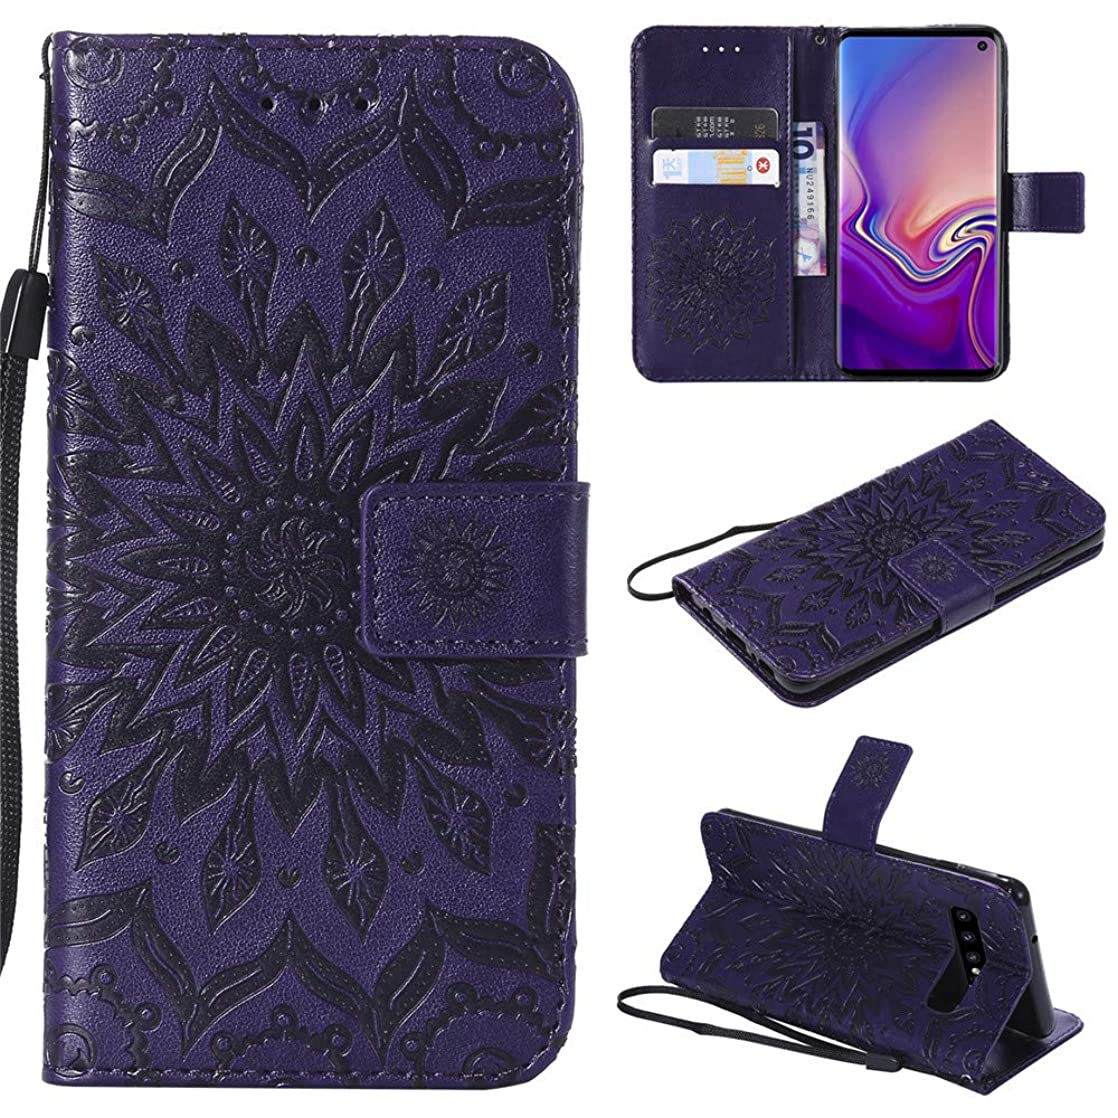 Samsung Galaxy S10 Wallet Case,MEUPZZK Sunflower with Shockproof Kickstand Credit Card Holder Flip Magnetic Closure Protection Wallet Leather PU Cover for Samsung Galaxy S10 (Purple) cmahiedl91321